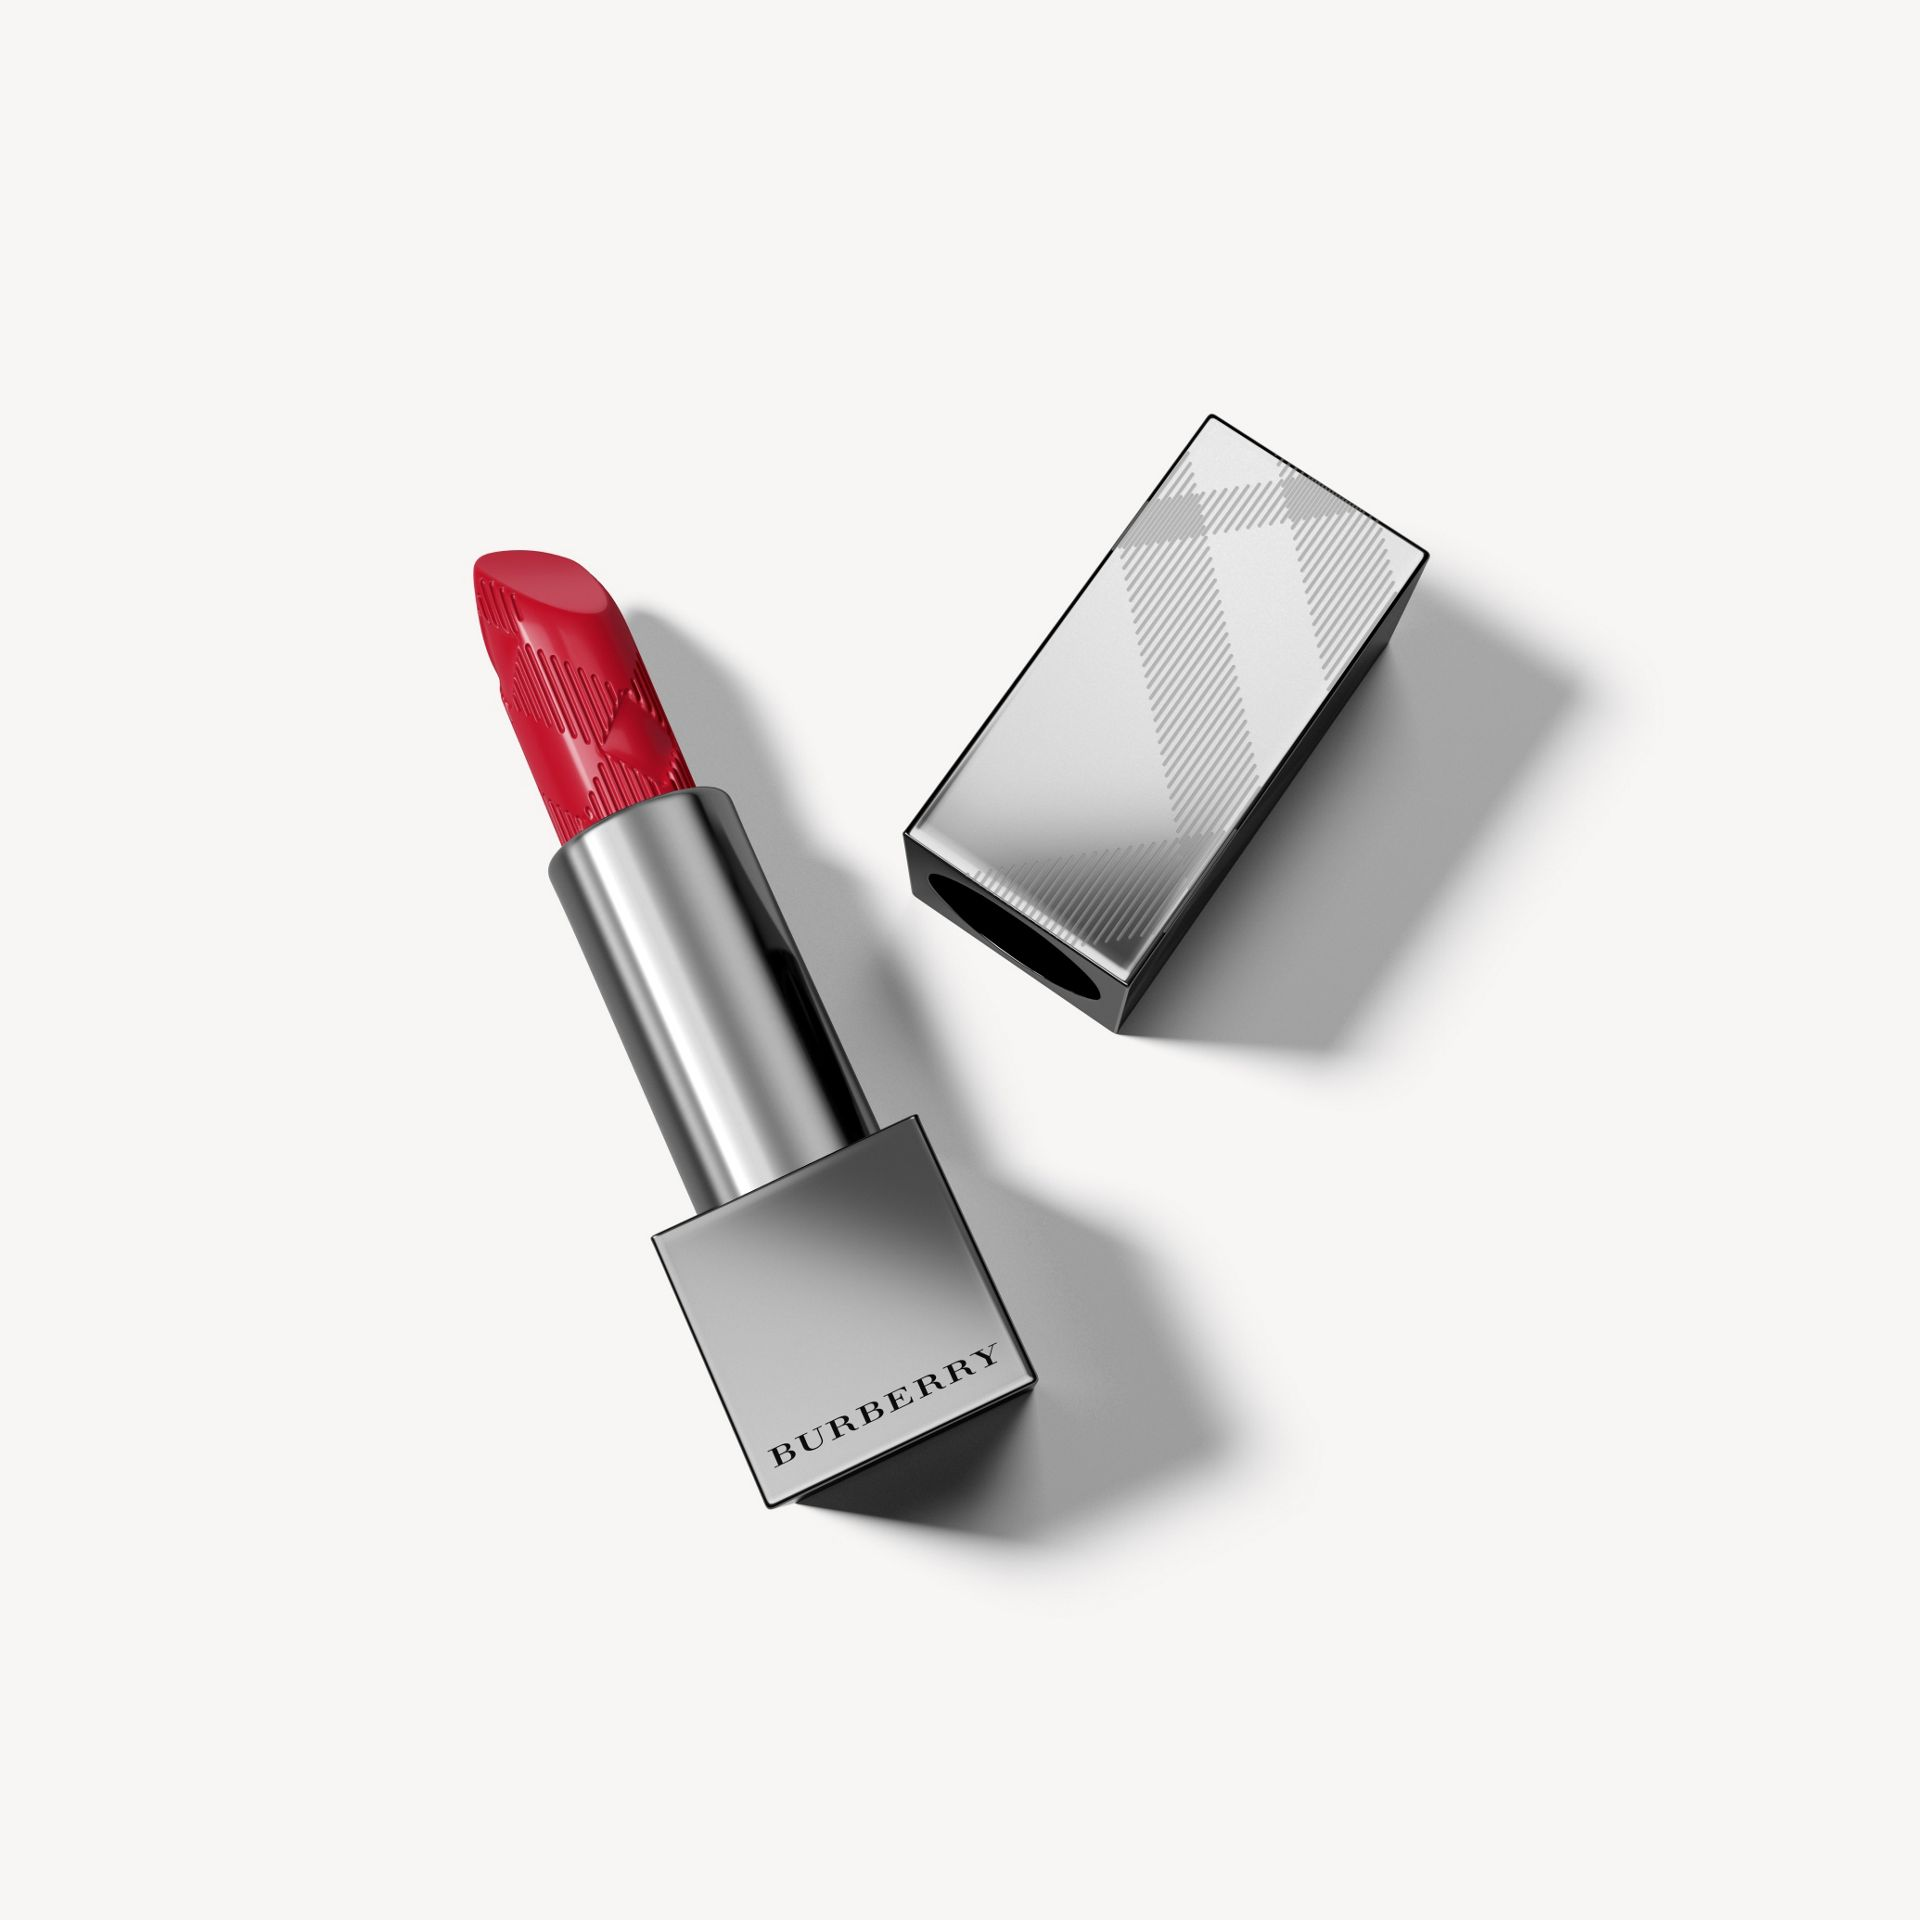 Poppy red 105 Burberry Kisses – Poppy Red No.105 - Galerie-Bild 1